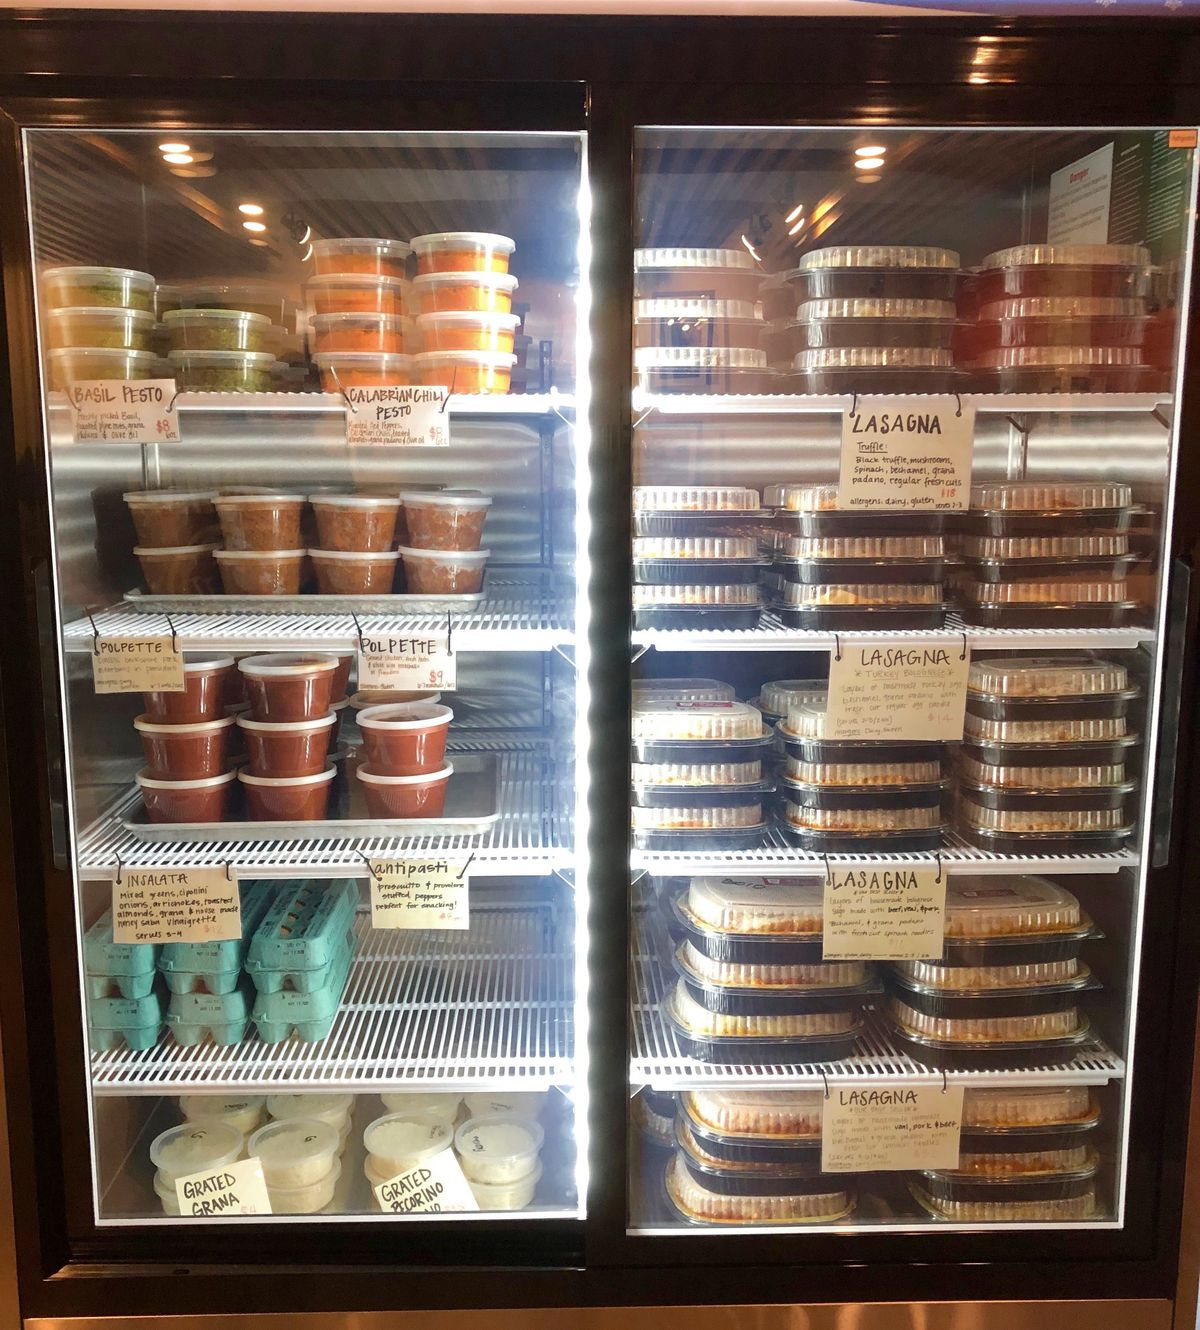 The cold case filled with pastas, sauces, eggs at Forza Storico open-air market at Westside Provisions